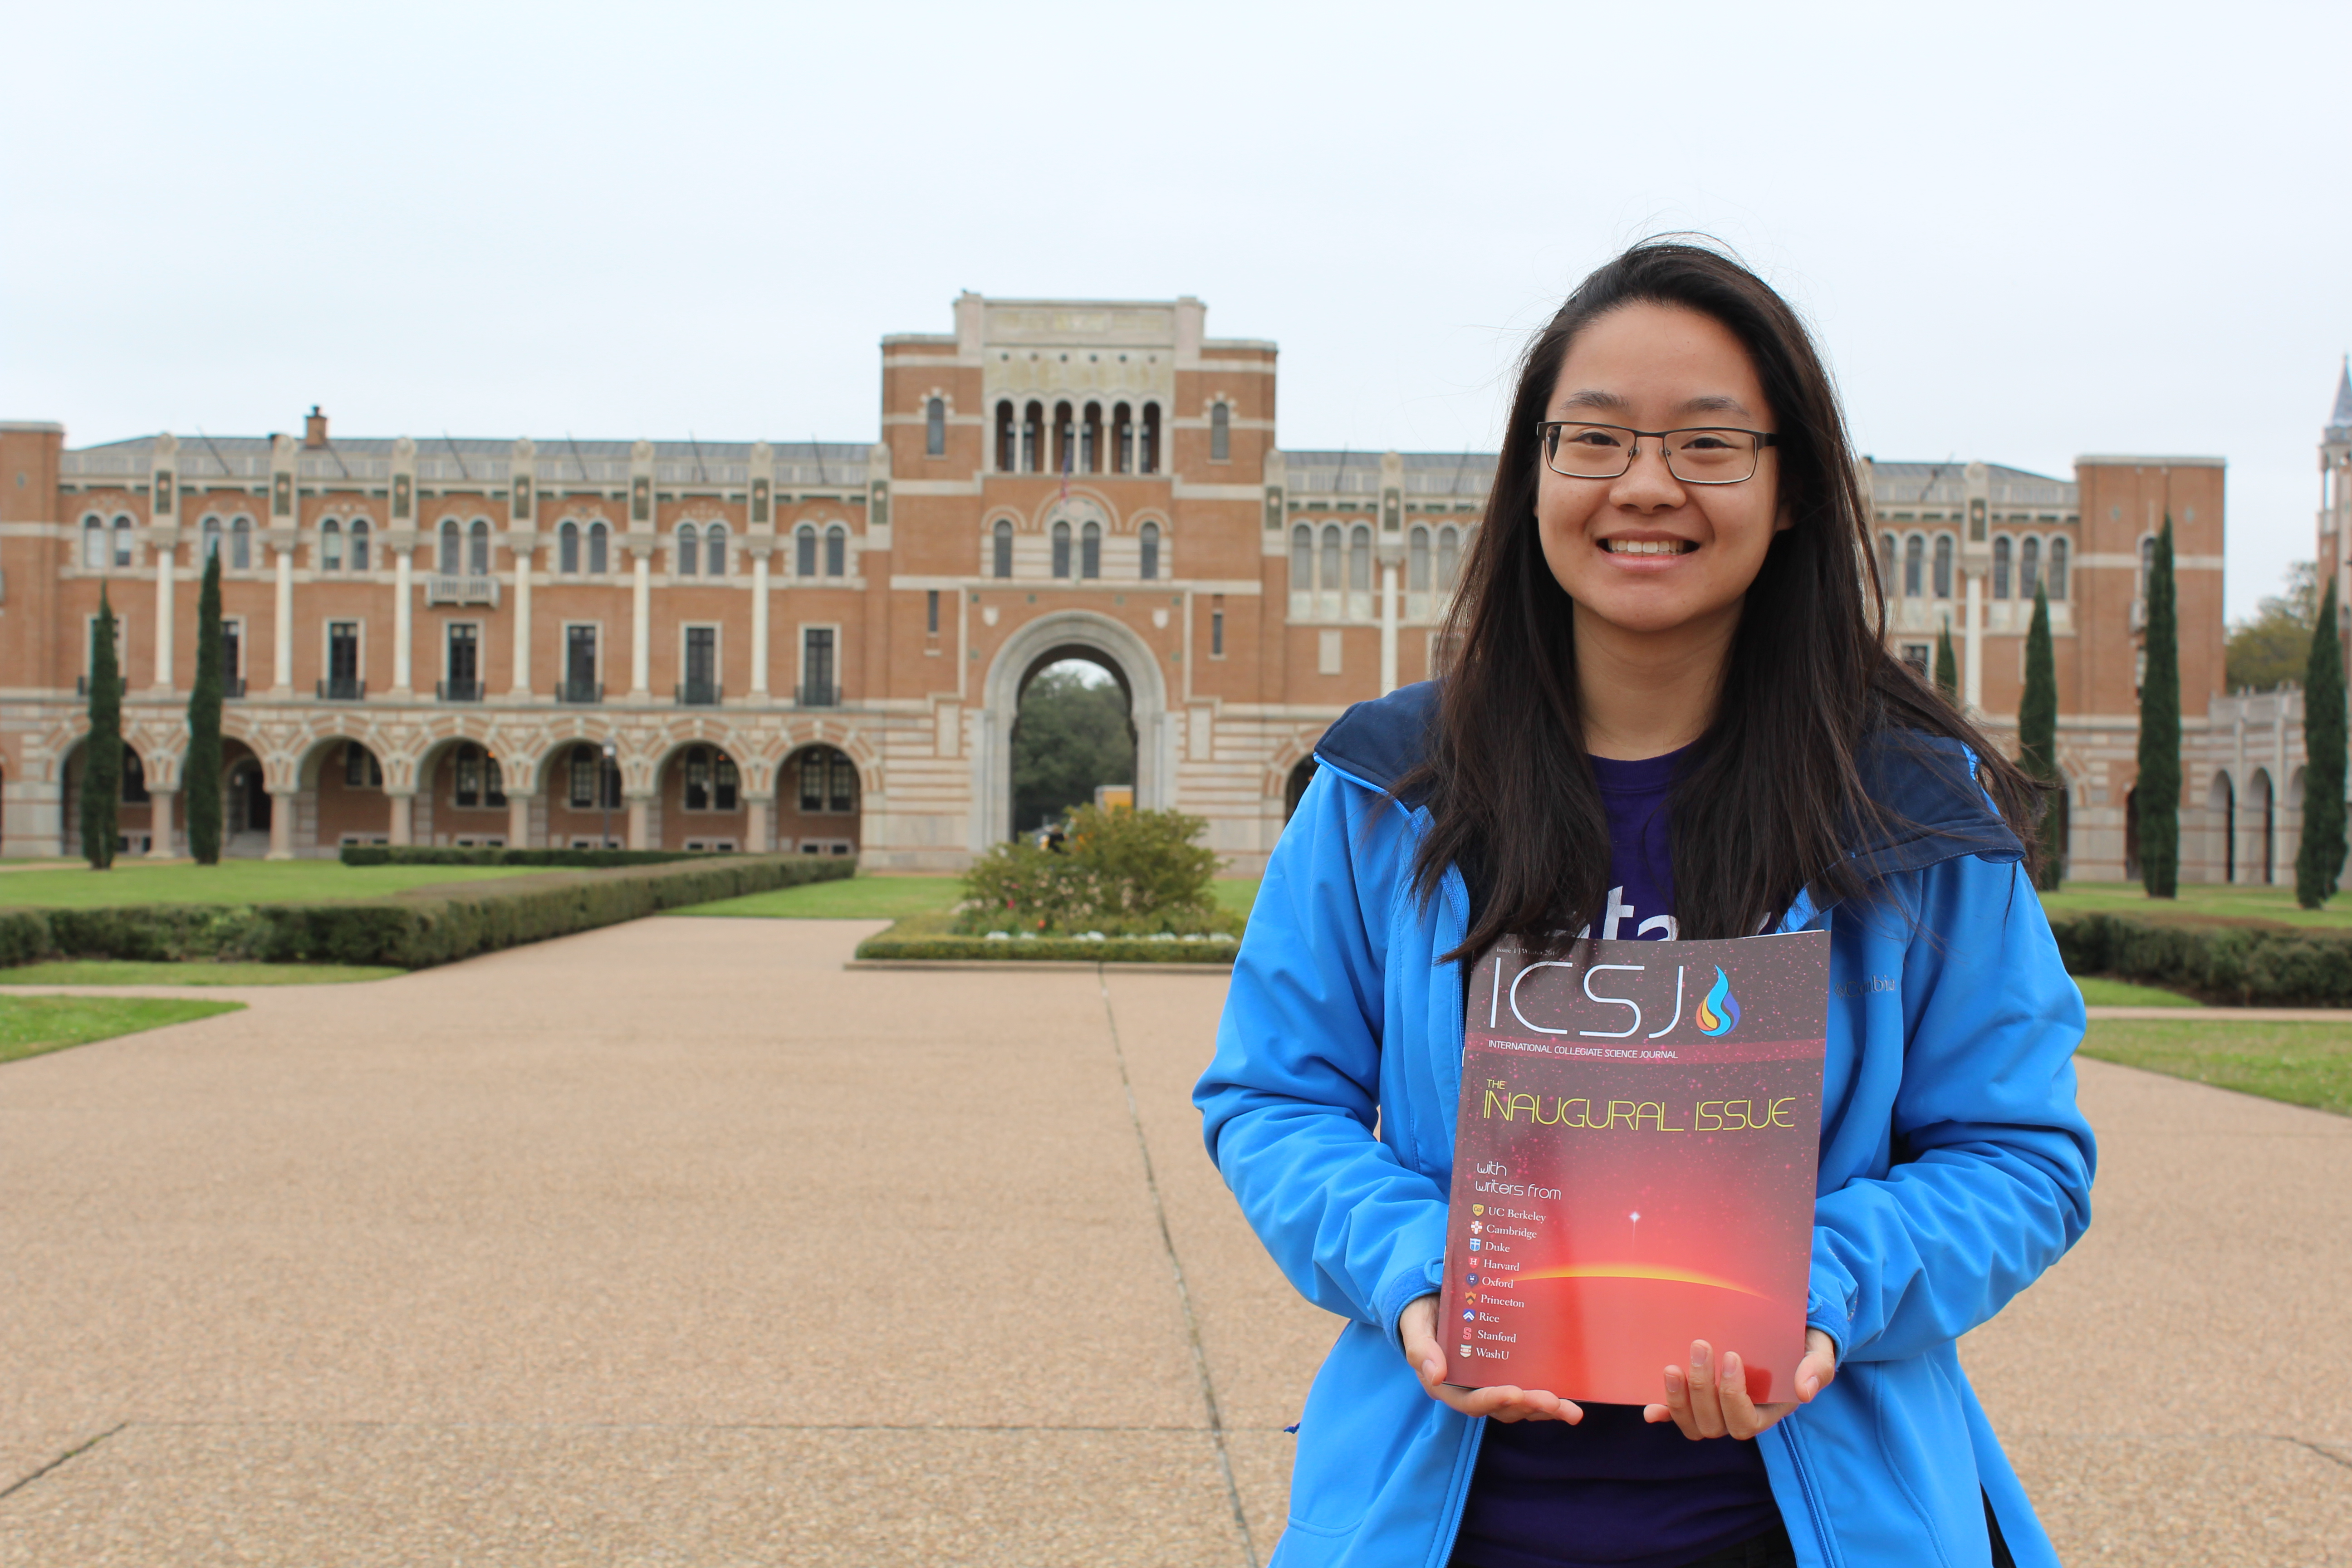 Julia Zhao holds a copy of the International Collegiate Science Journal  on the grounds of  Rice University's campus.